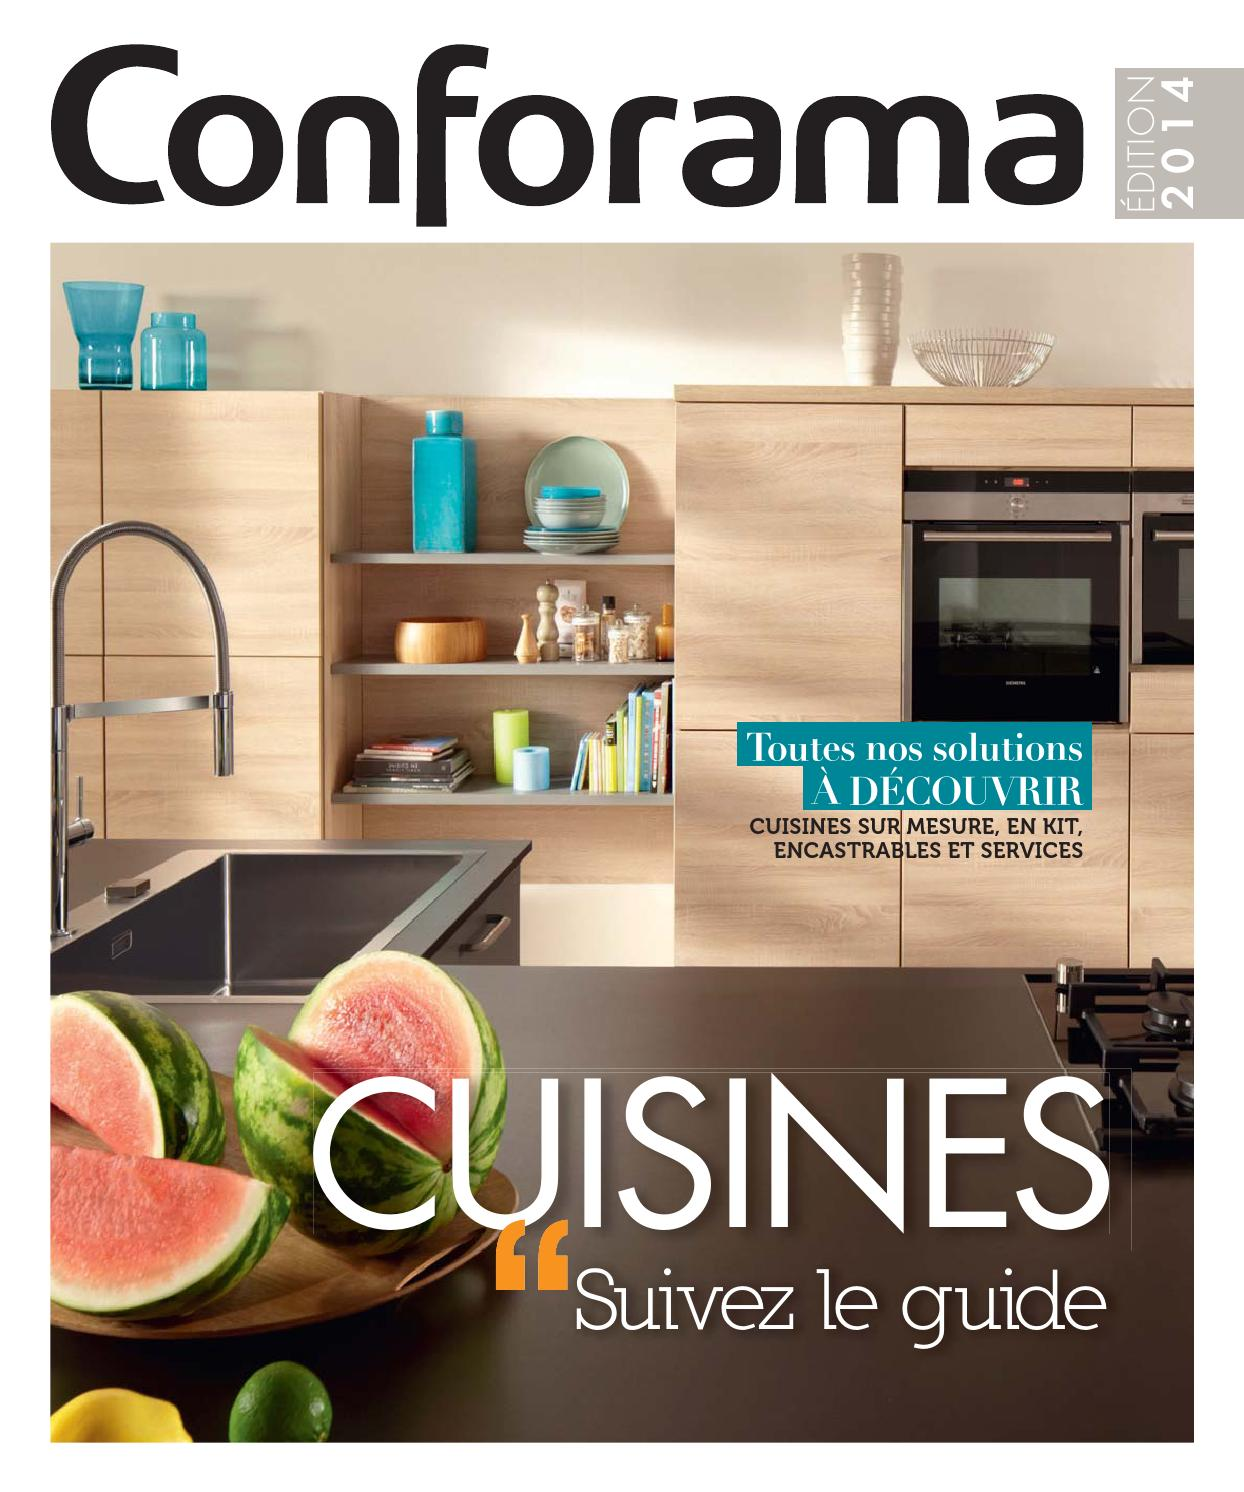 Catalogue conforama guide cuisines 2014 by joe monroe for Les cuisines encastrables